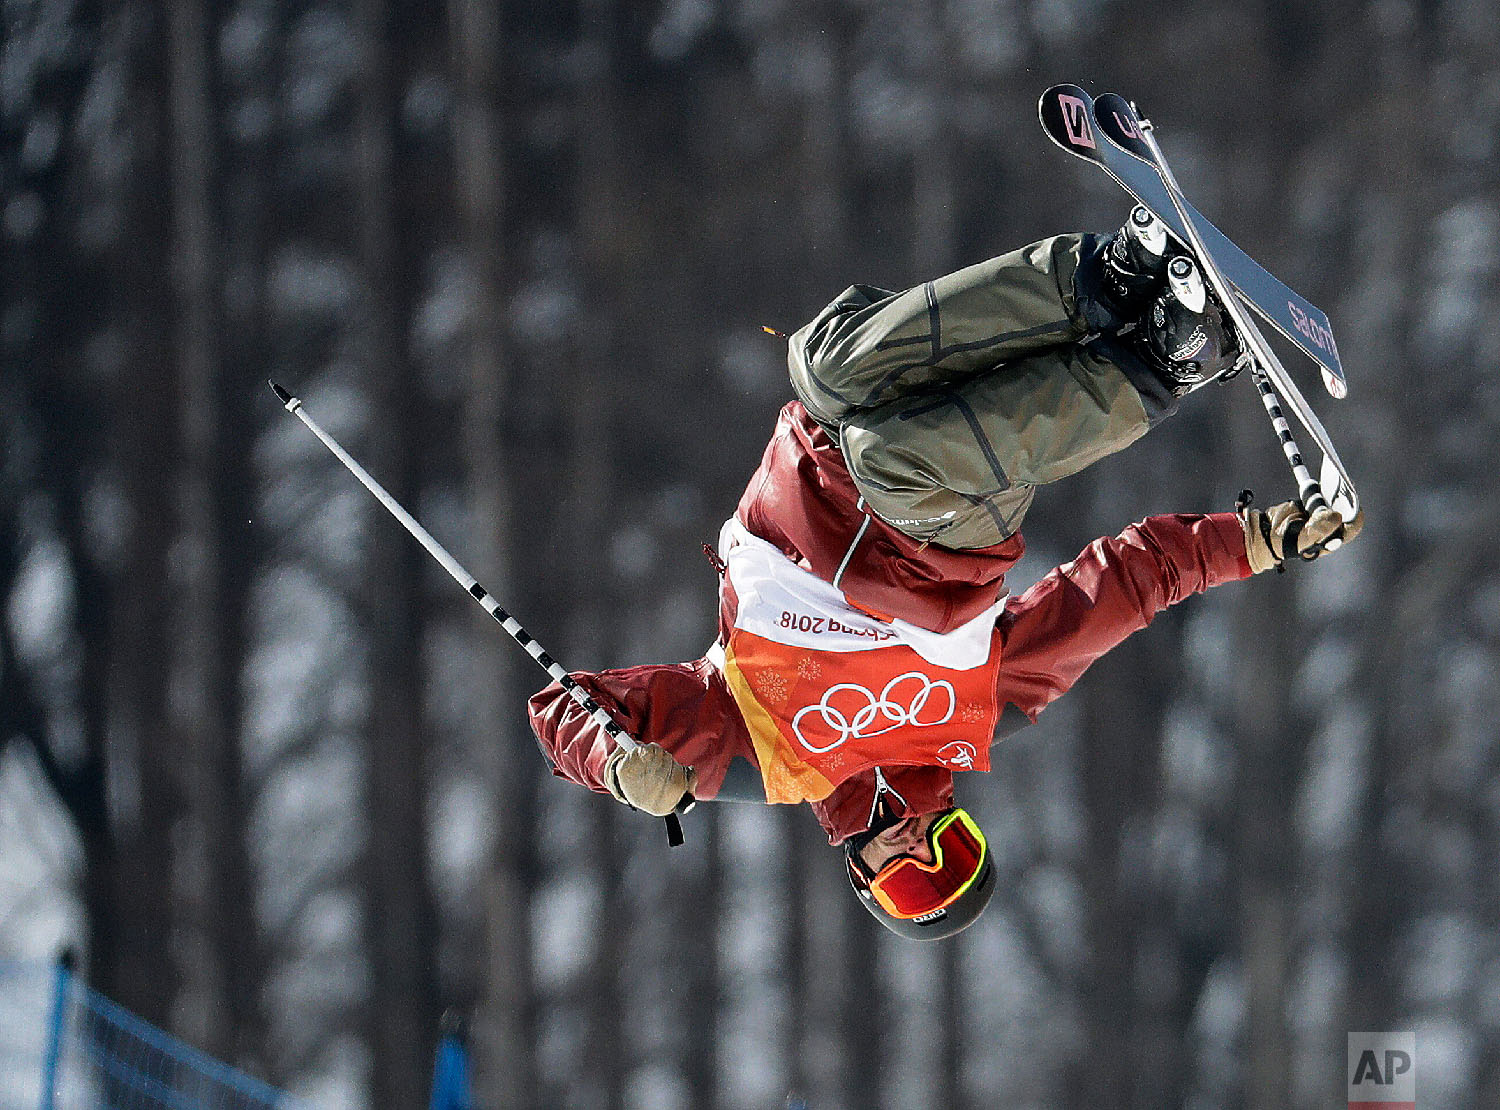 NoahBowman, of Canada, jumps during the men's halfpipe final at Phoenix Snow Park at the 2018 Winter Olympics in Pyeongchang, South Korea, Thursday, Feb. 22, 2018. (AP Photo/Lee Jin-man)